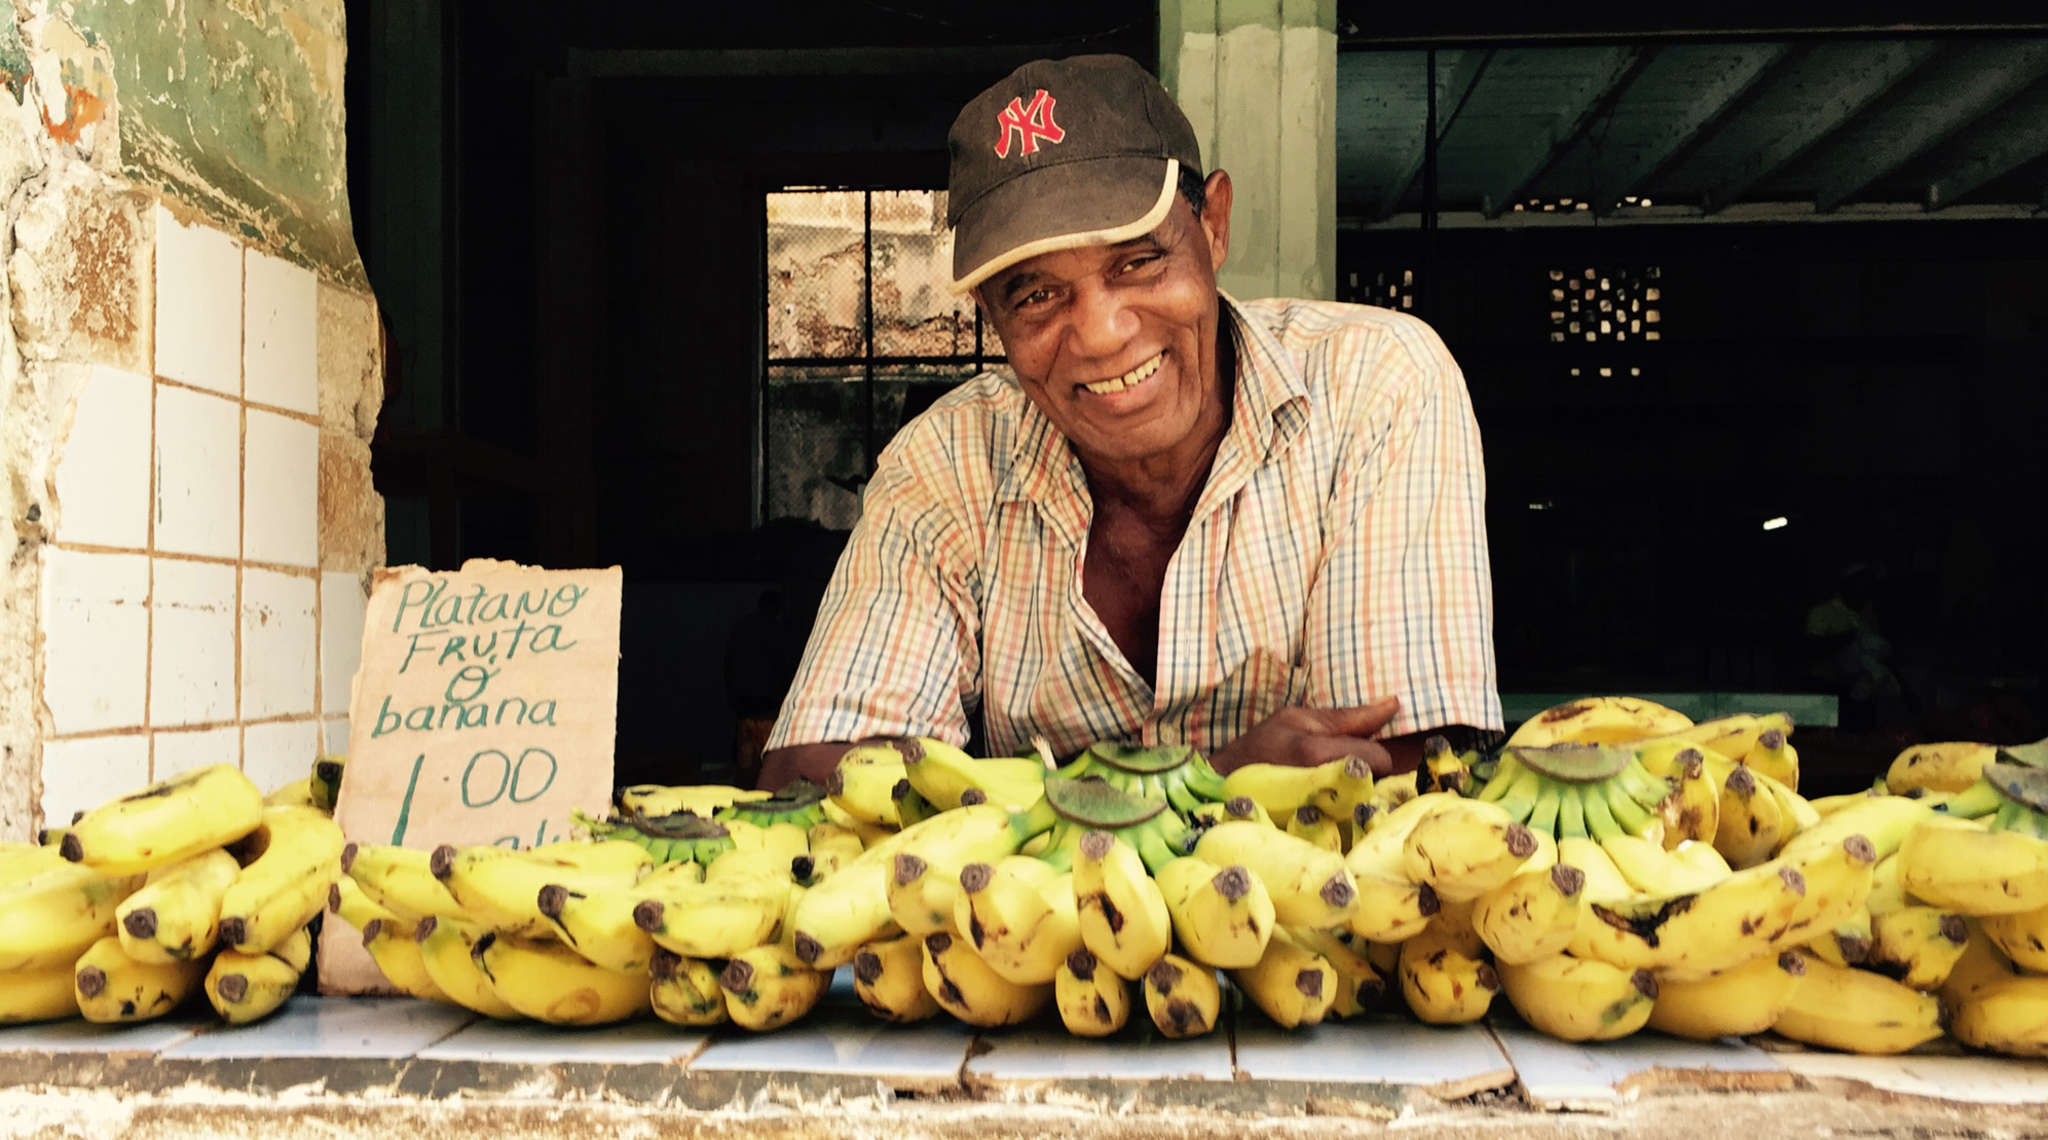 A banana vendor in Old Havana. As renovations advance at an astonishing pace in the city after the restoration of U.S. diplomatic relations, there are also efforts in Cuba to protect its cultural heritage.